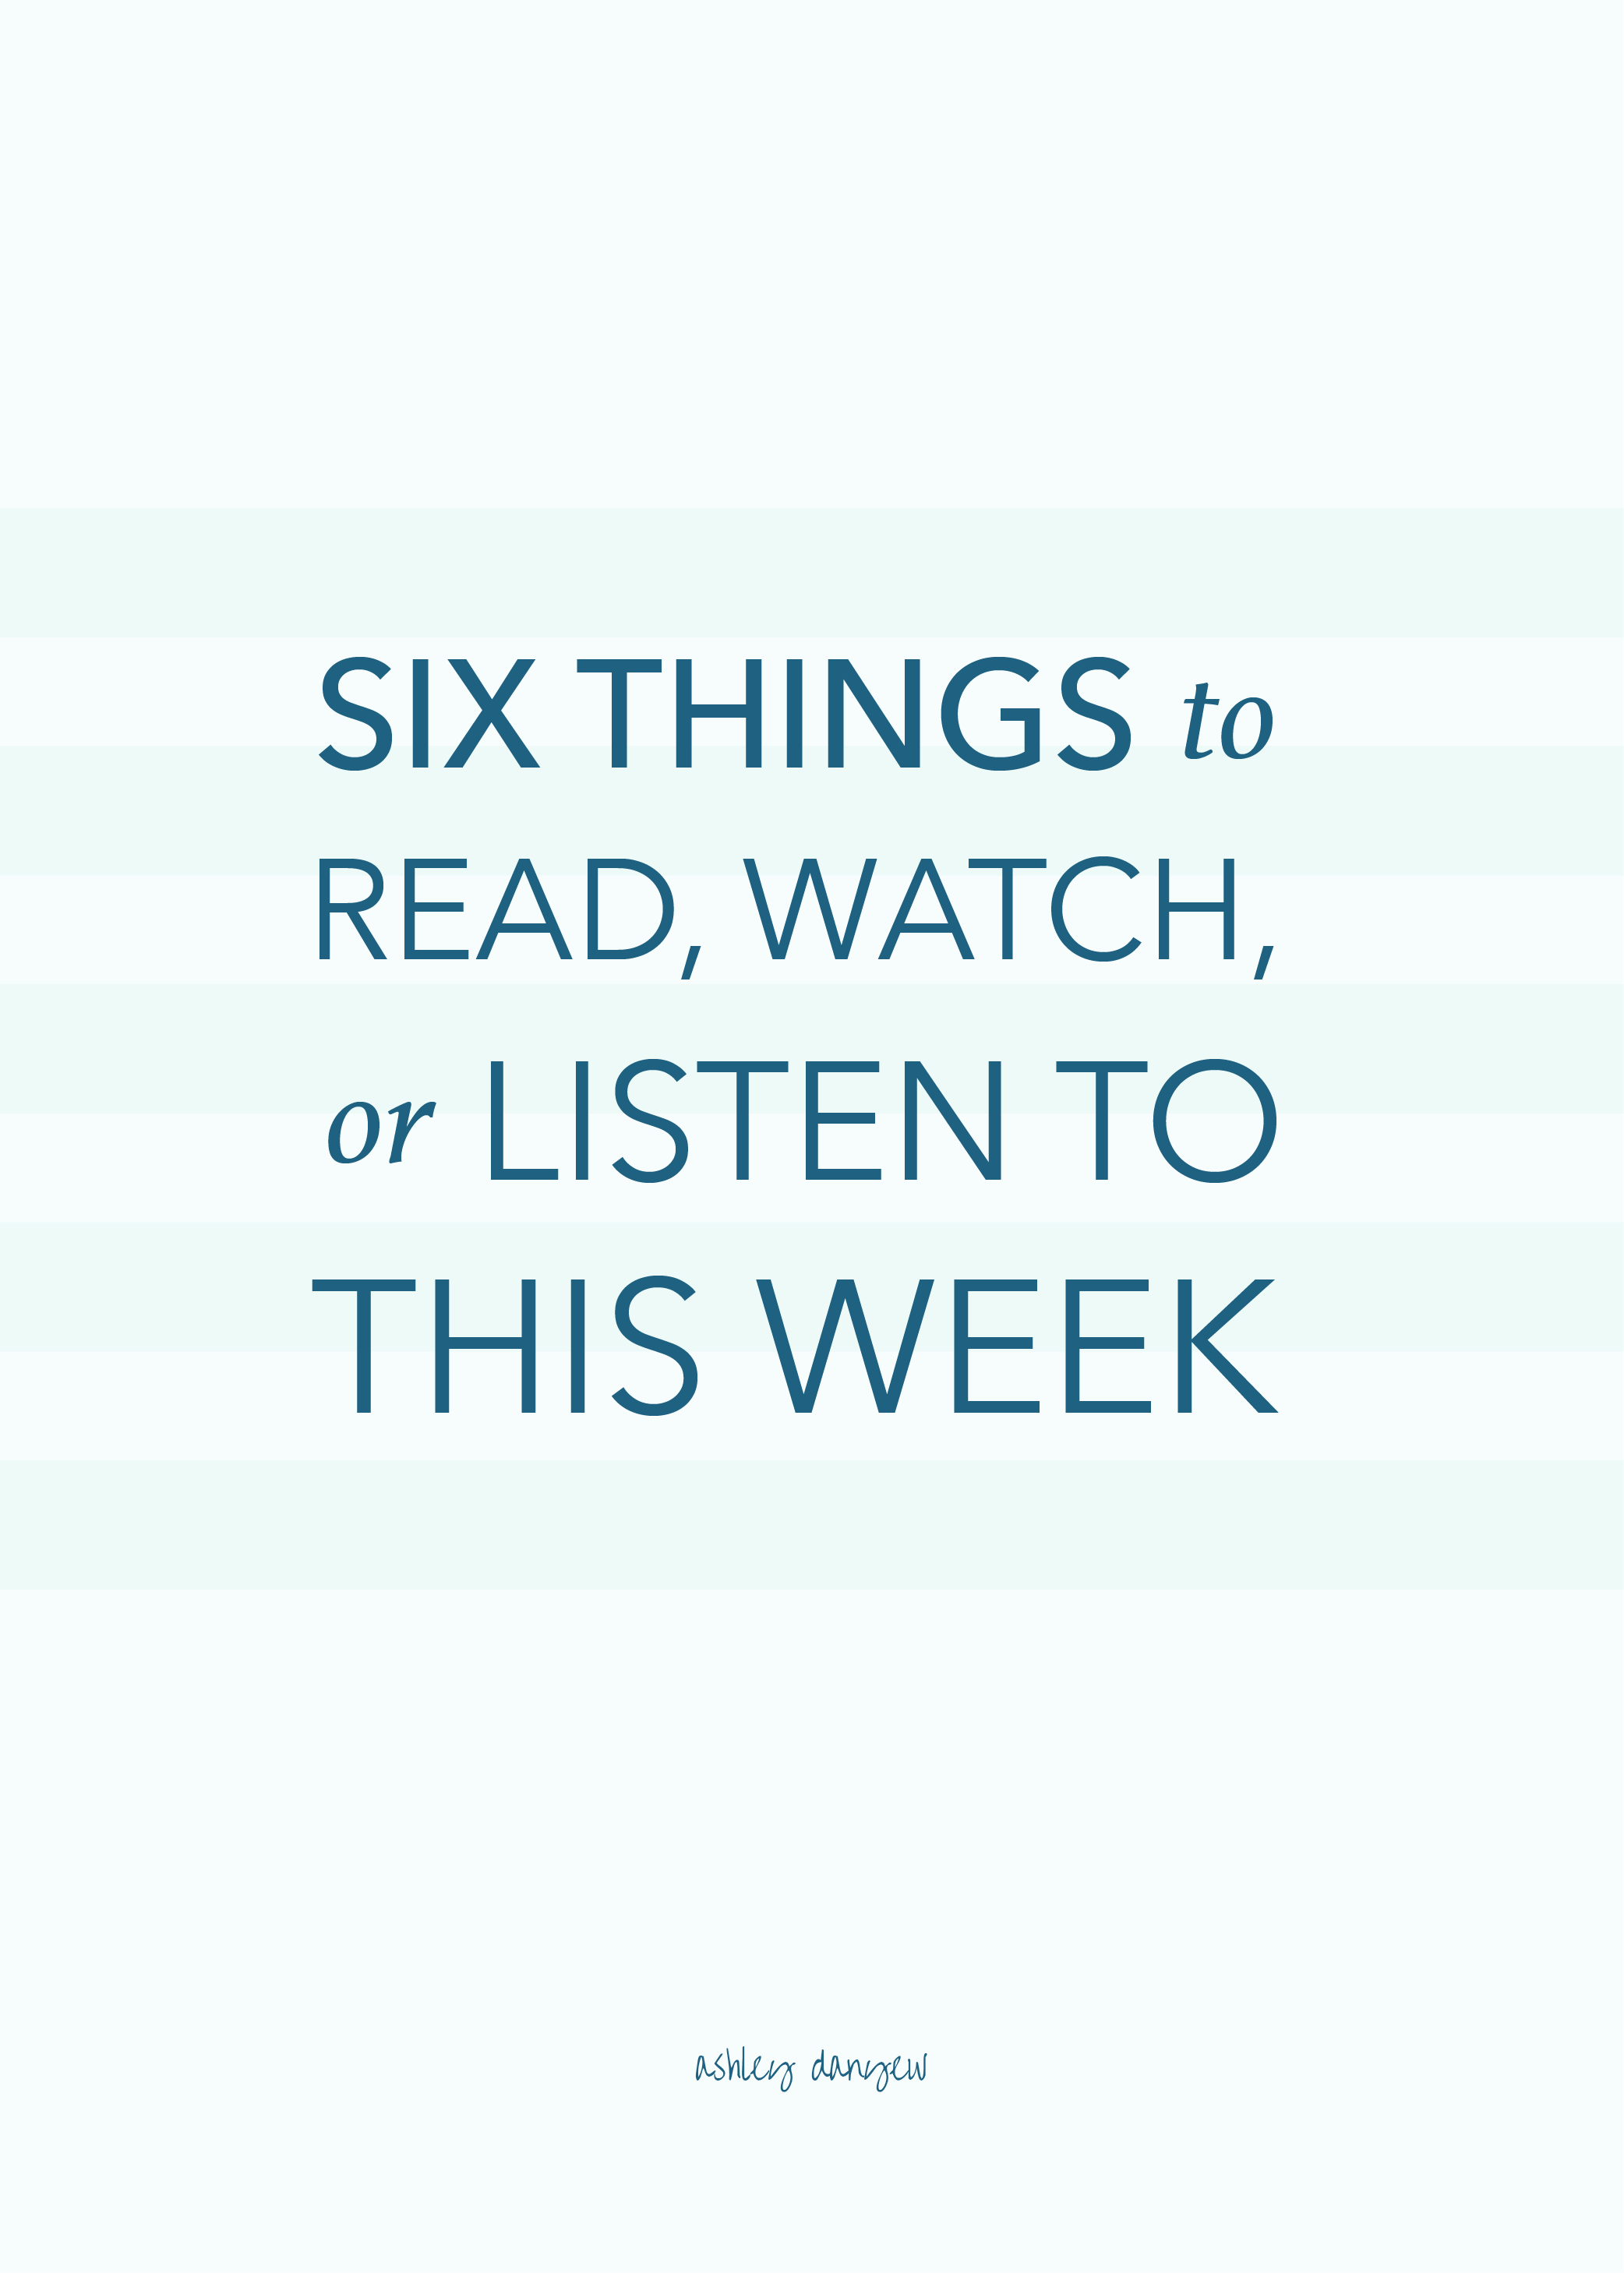 Six Things to Read, Watch, or Listen to This Week